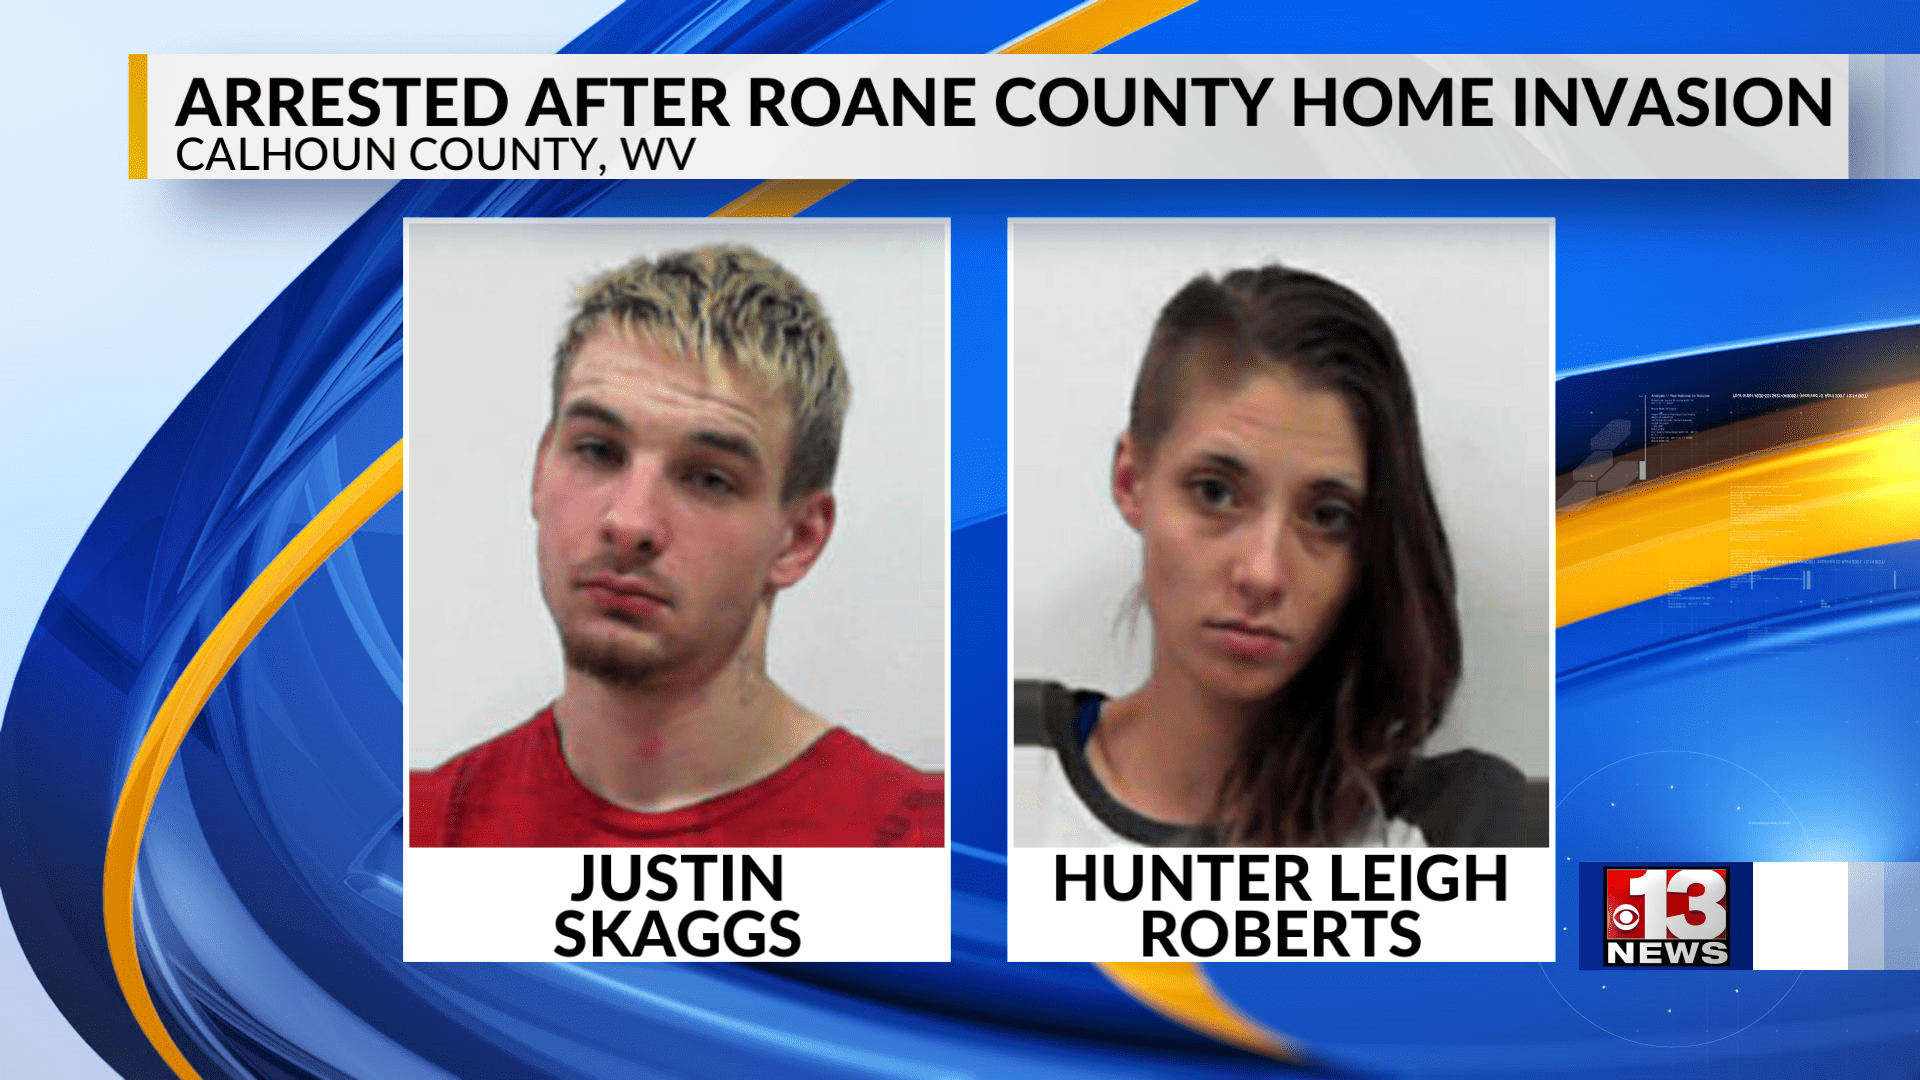 2 Arrested After Home Invasion in Roane County